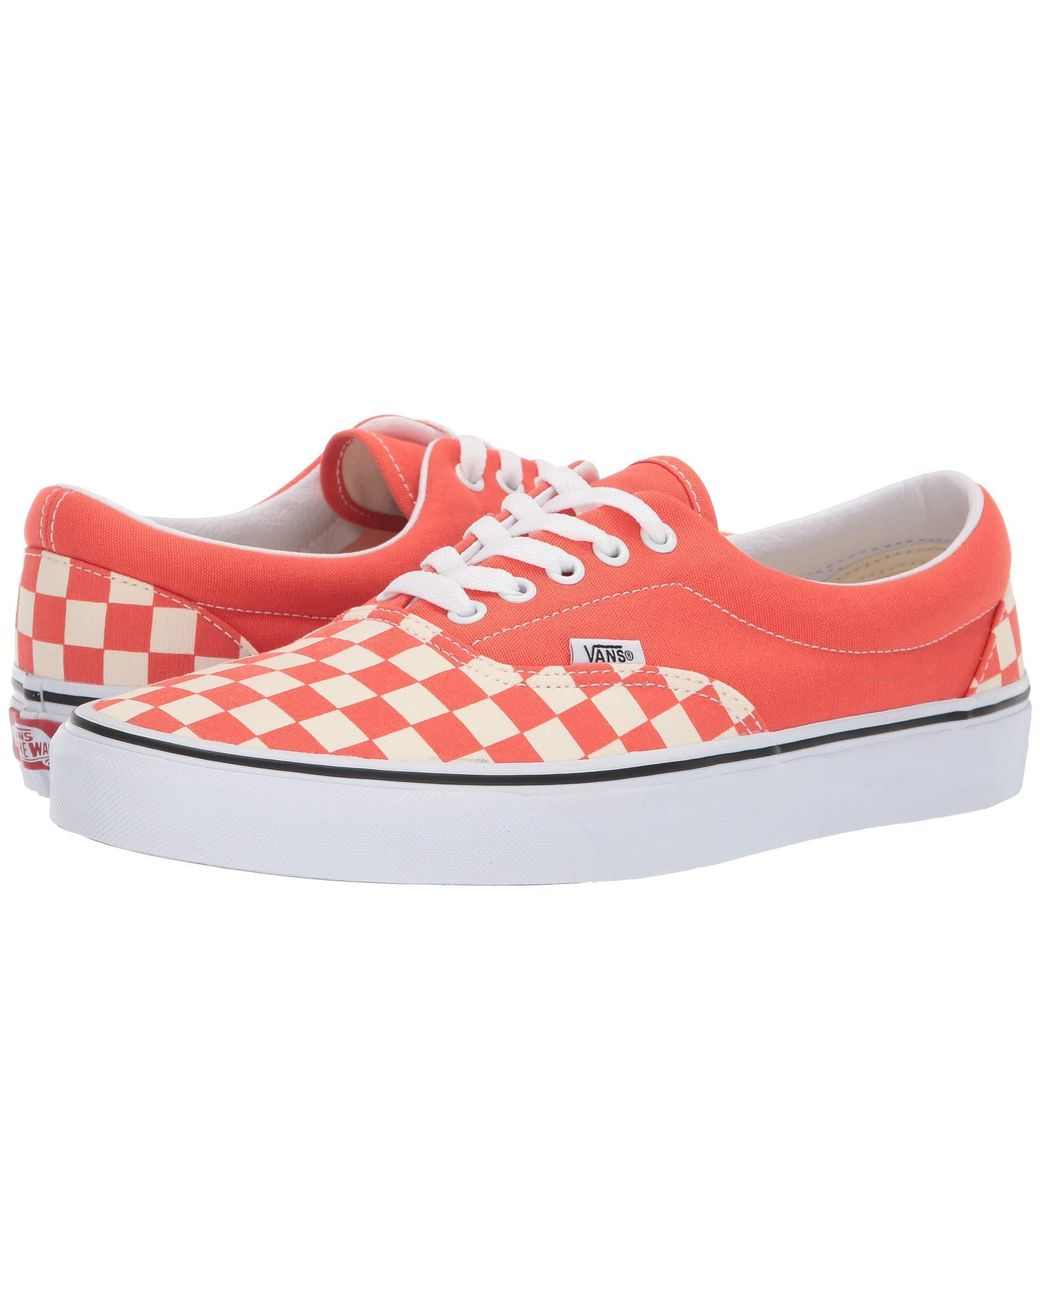 1eb4f421d2 Lyst - Vans Era ((checkerboard) Emberglow true White) Shoes